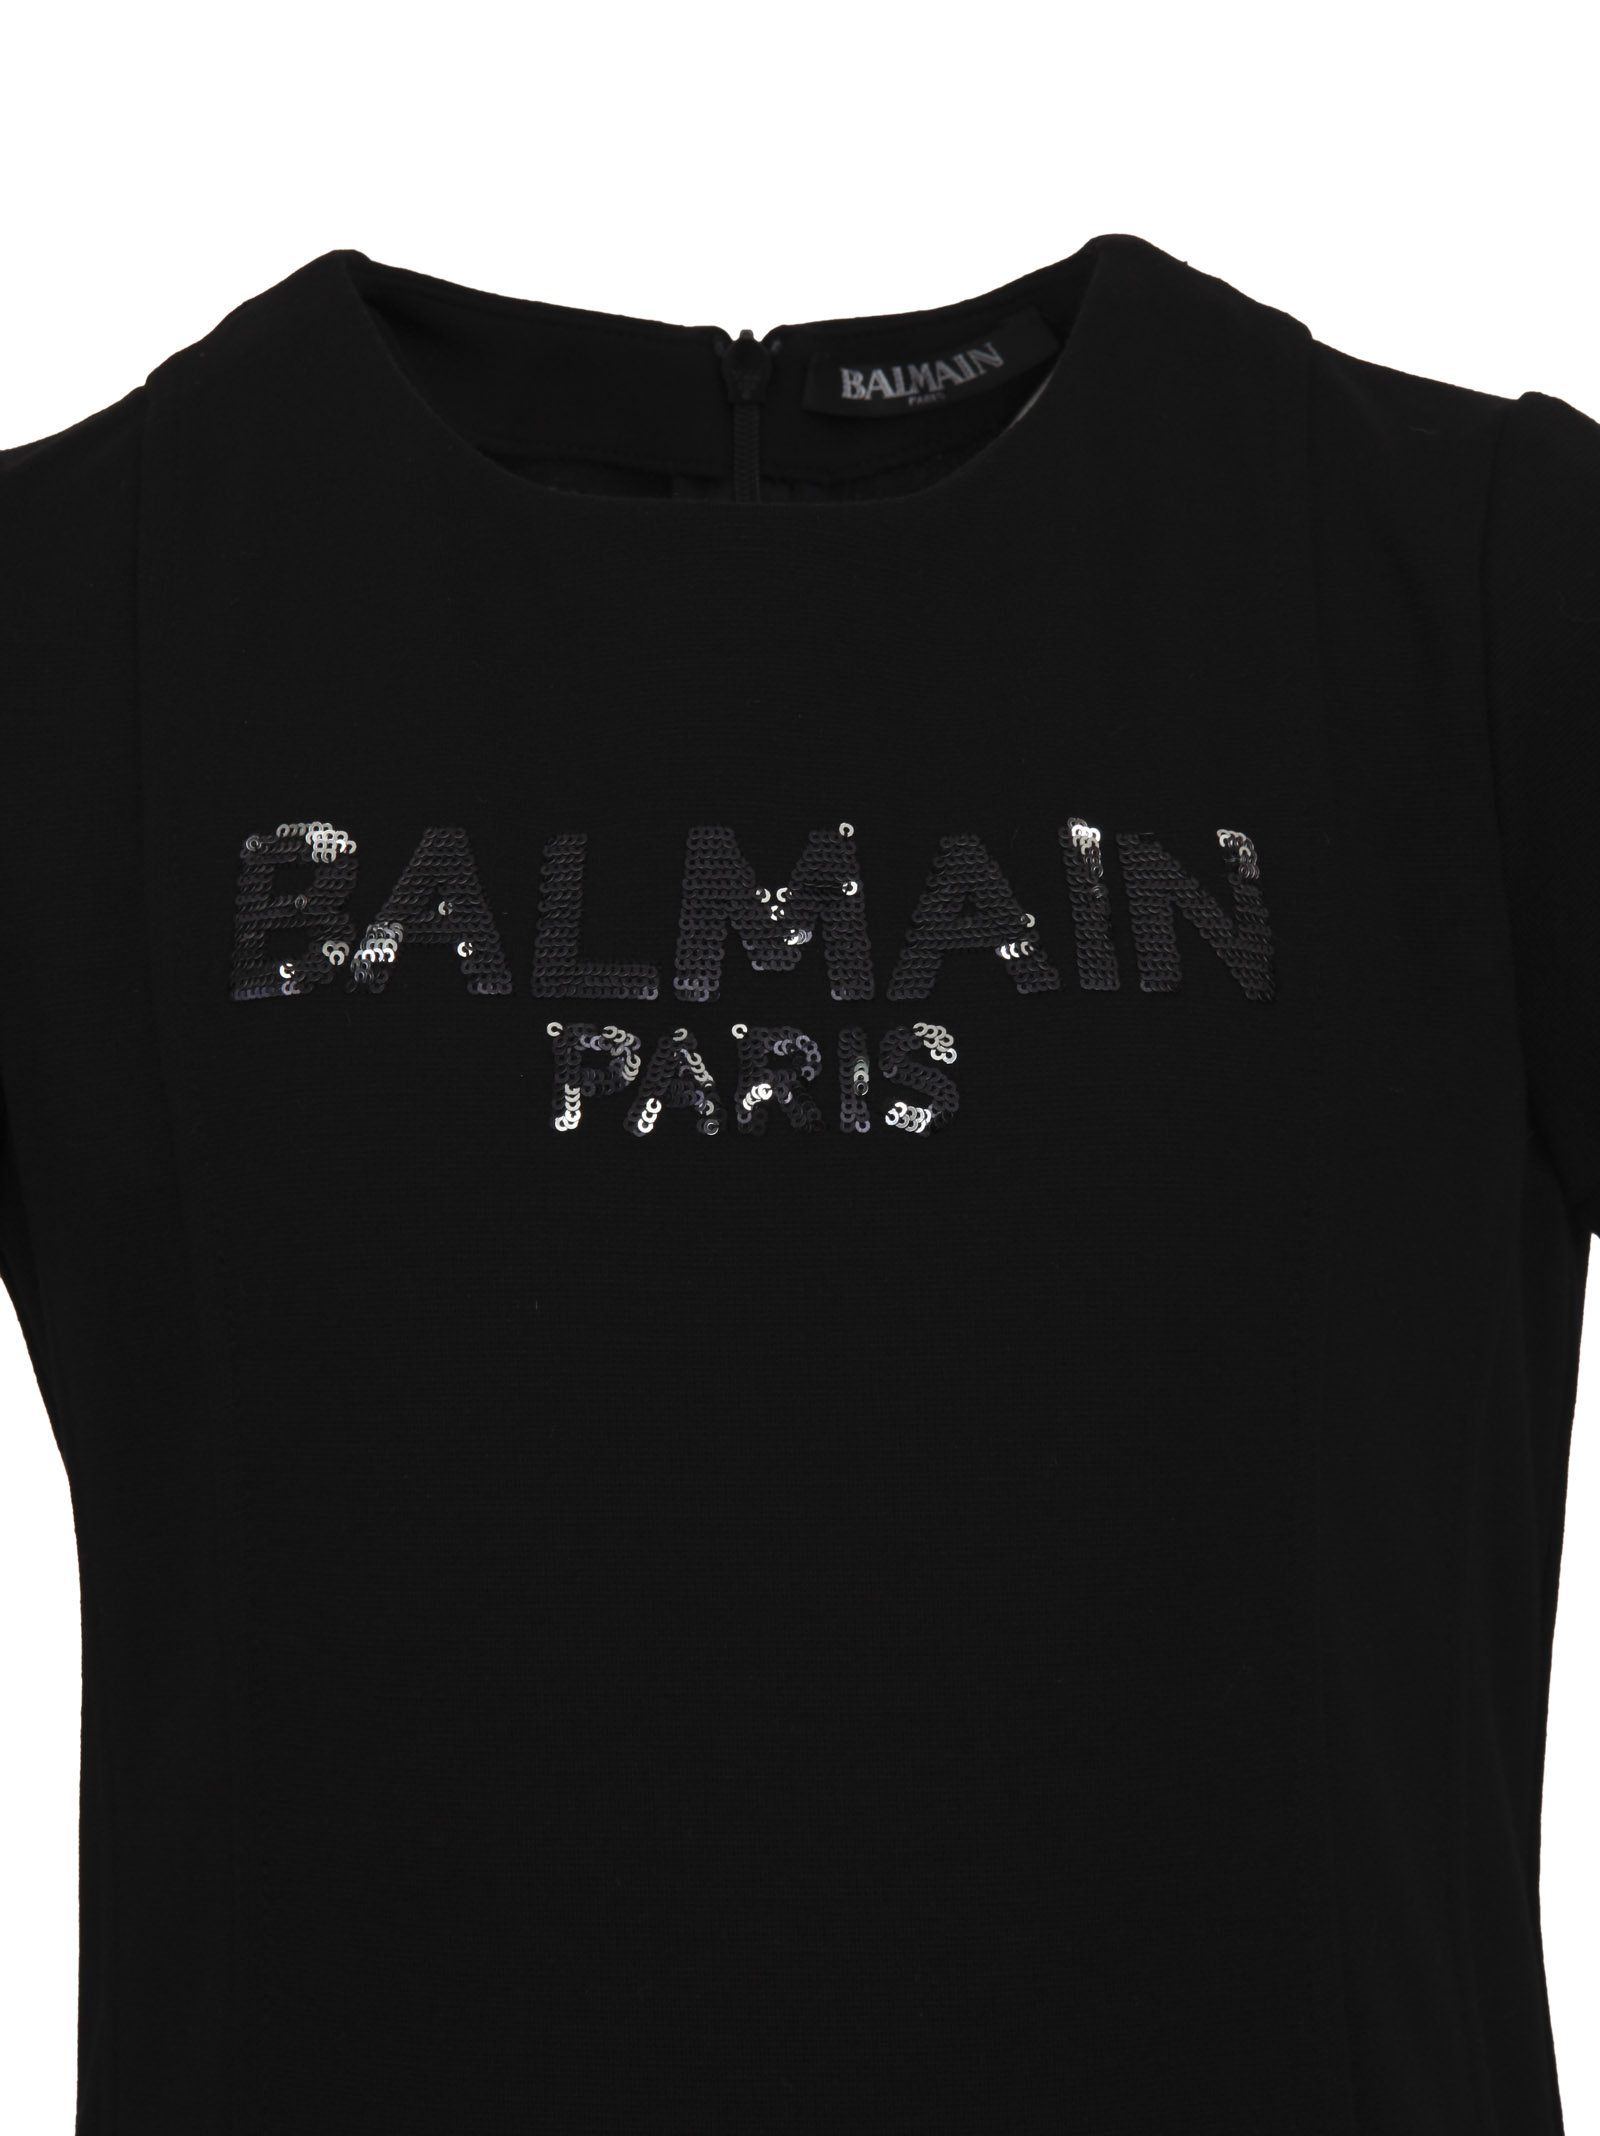 64ca29af3 Balmain Paris Kids dress - BALMAIN PARIS KIDS - Michele Franzese Moda